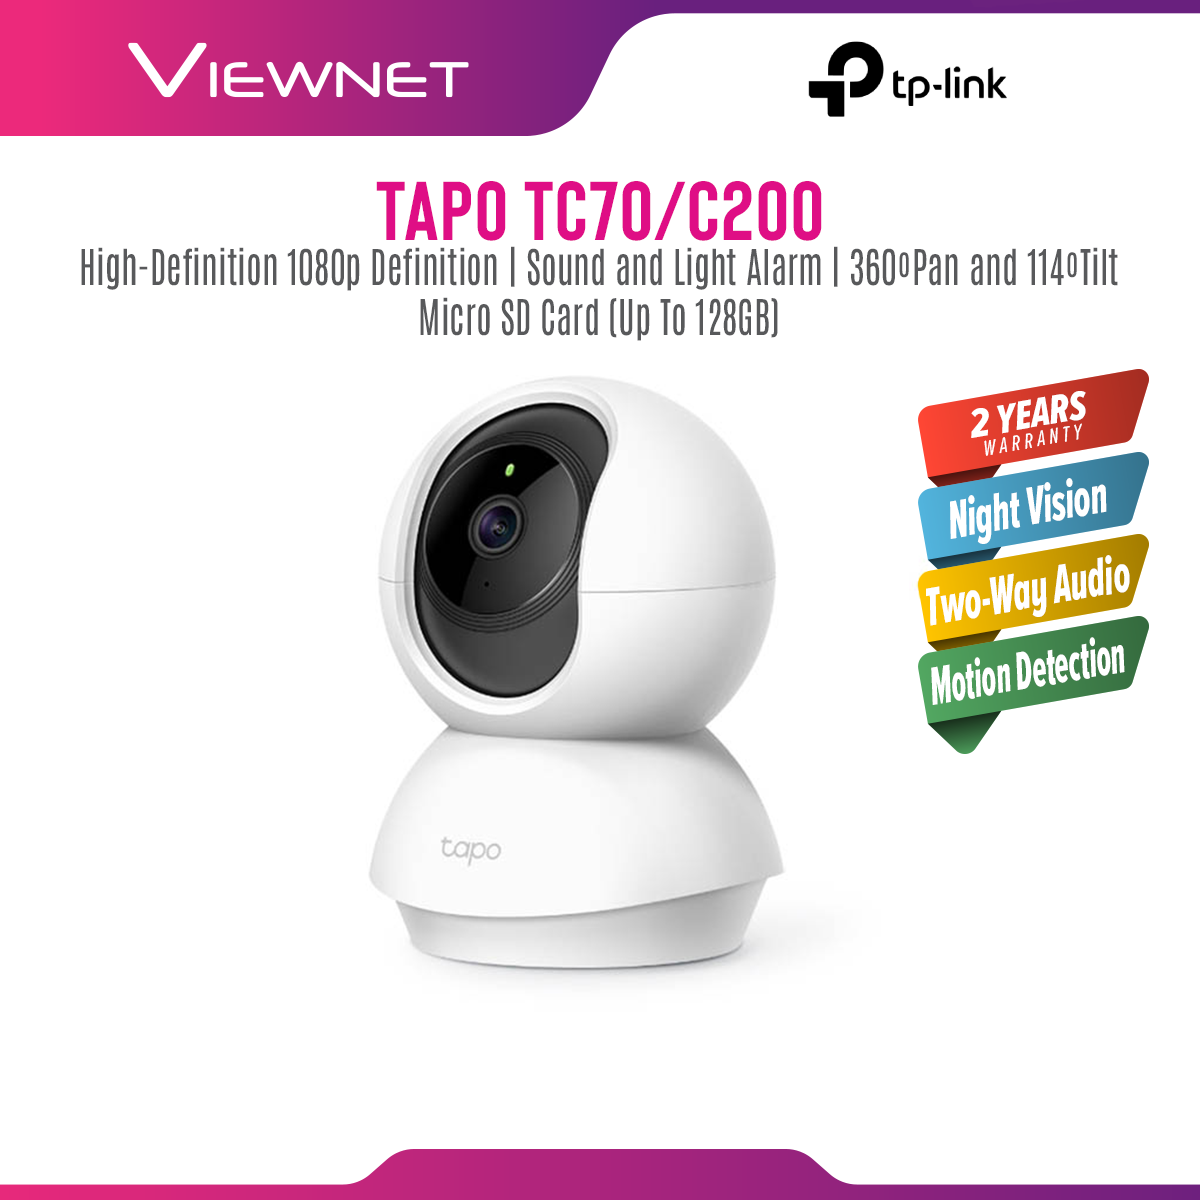 [ONLINE EXCLUSIVE 💥]TP-Link Tapo TC70 / TAPO C200 / TAPO C200 1080P Full HD Pan / Tilt Wireless WiFi Home Security Surveillance IP Camera